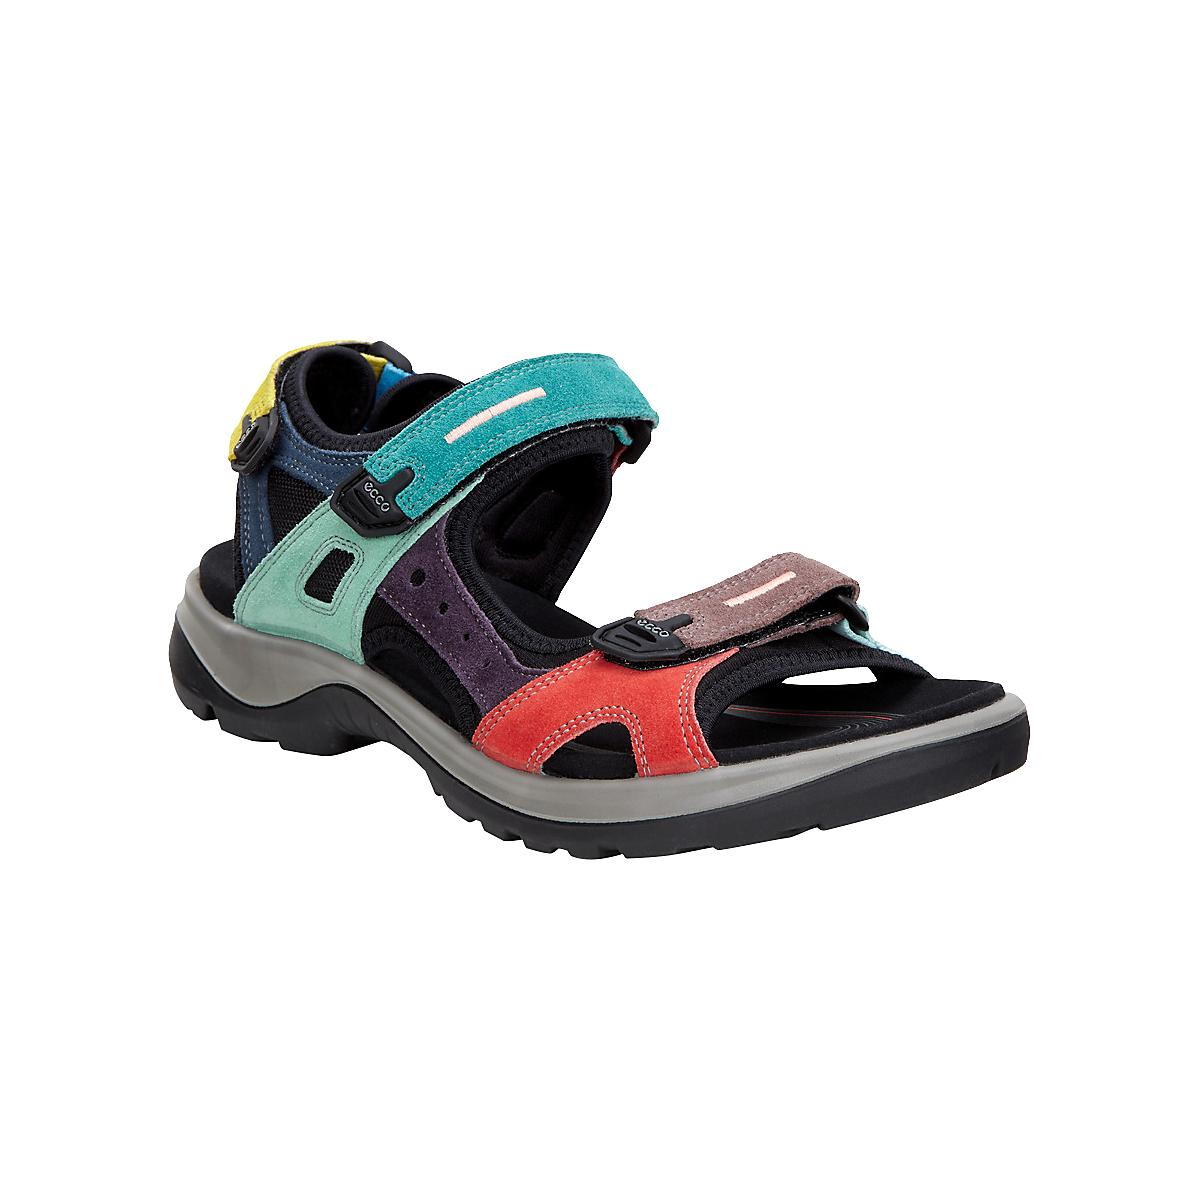 f07b6e8bff3b Womens Ecco Anniversary Yucatan Sandals Shoe at Road Runner Sports